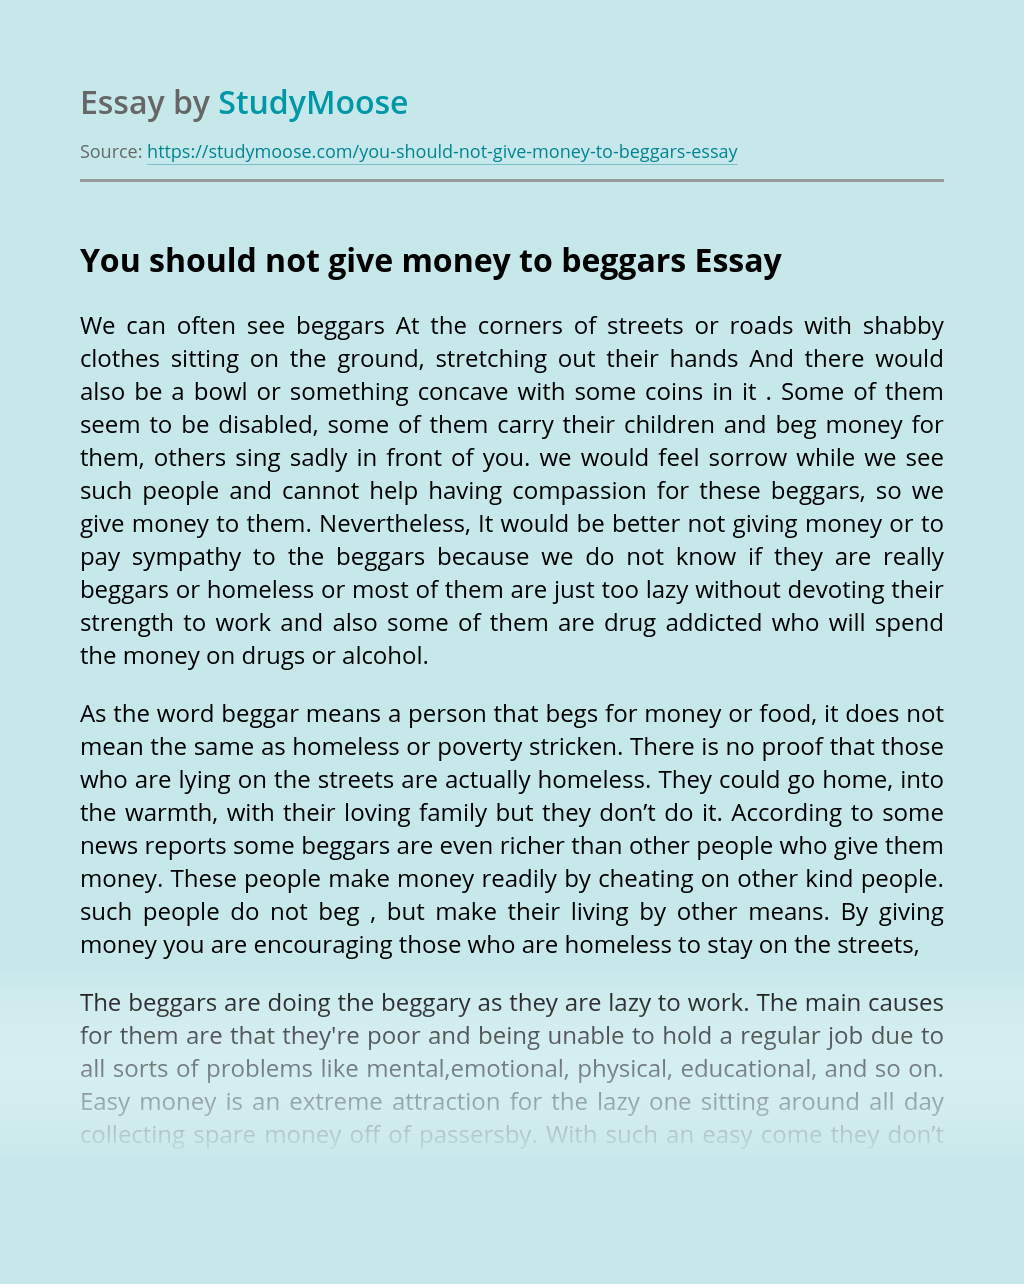 You should not give money to beggars